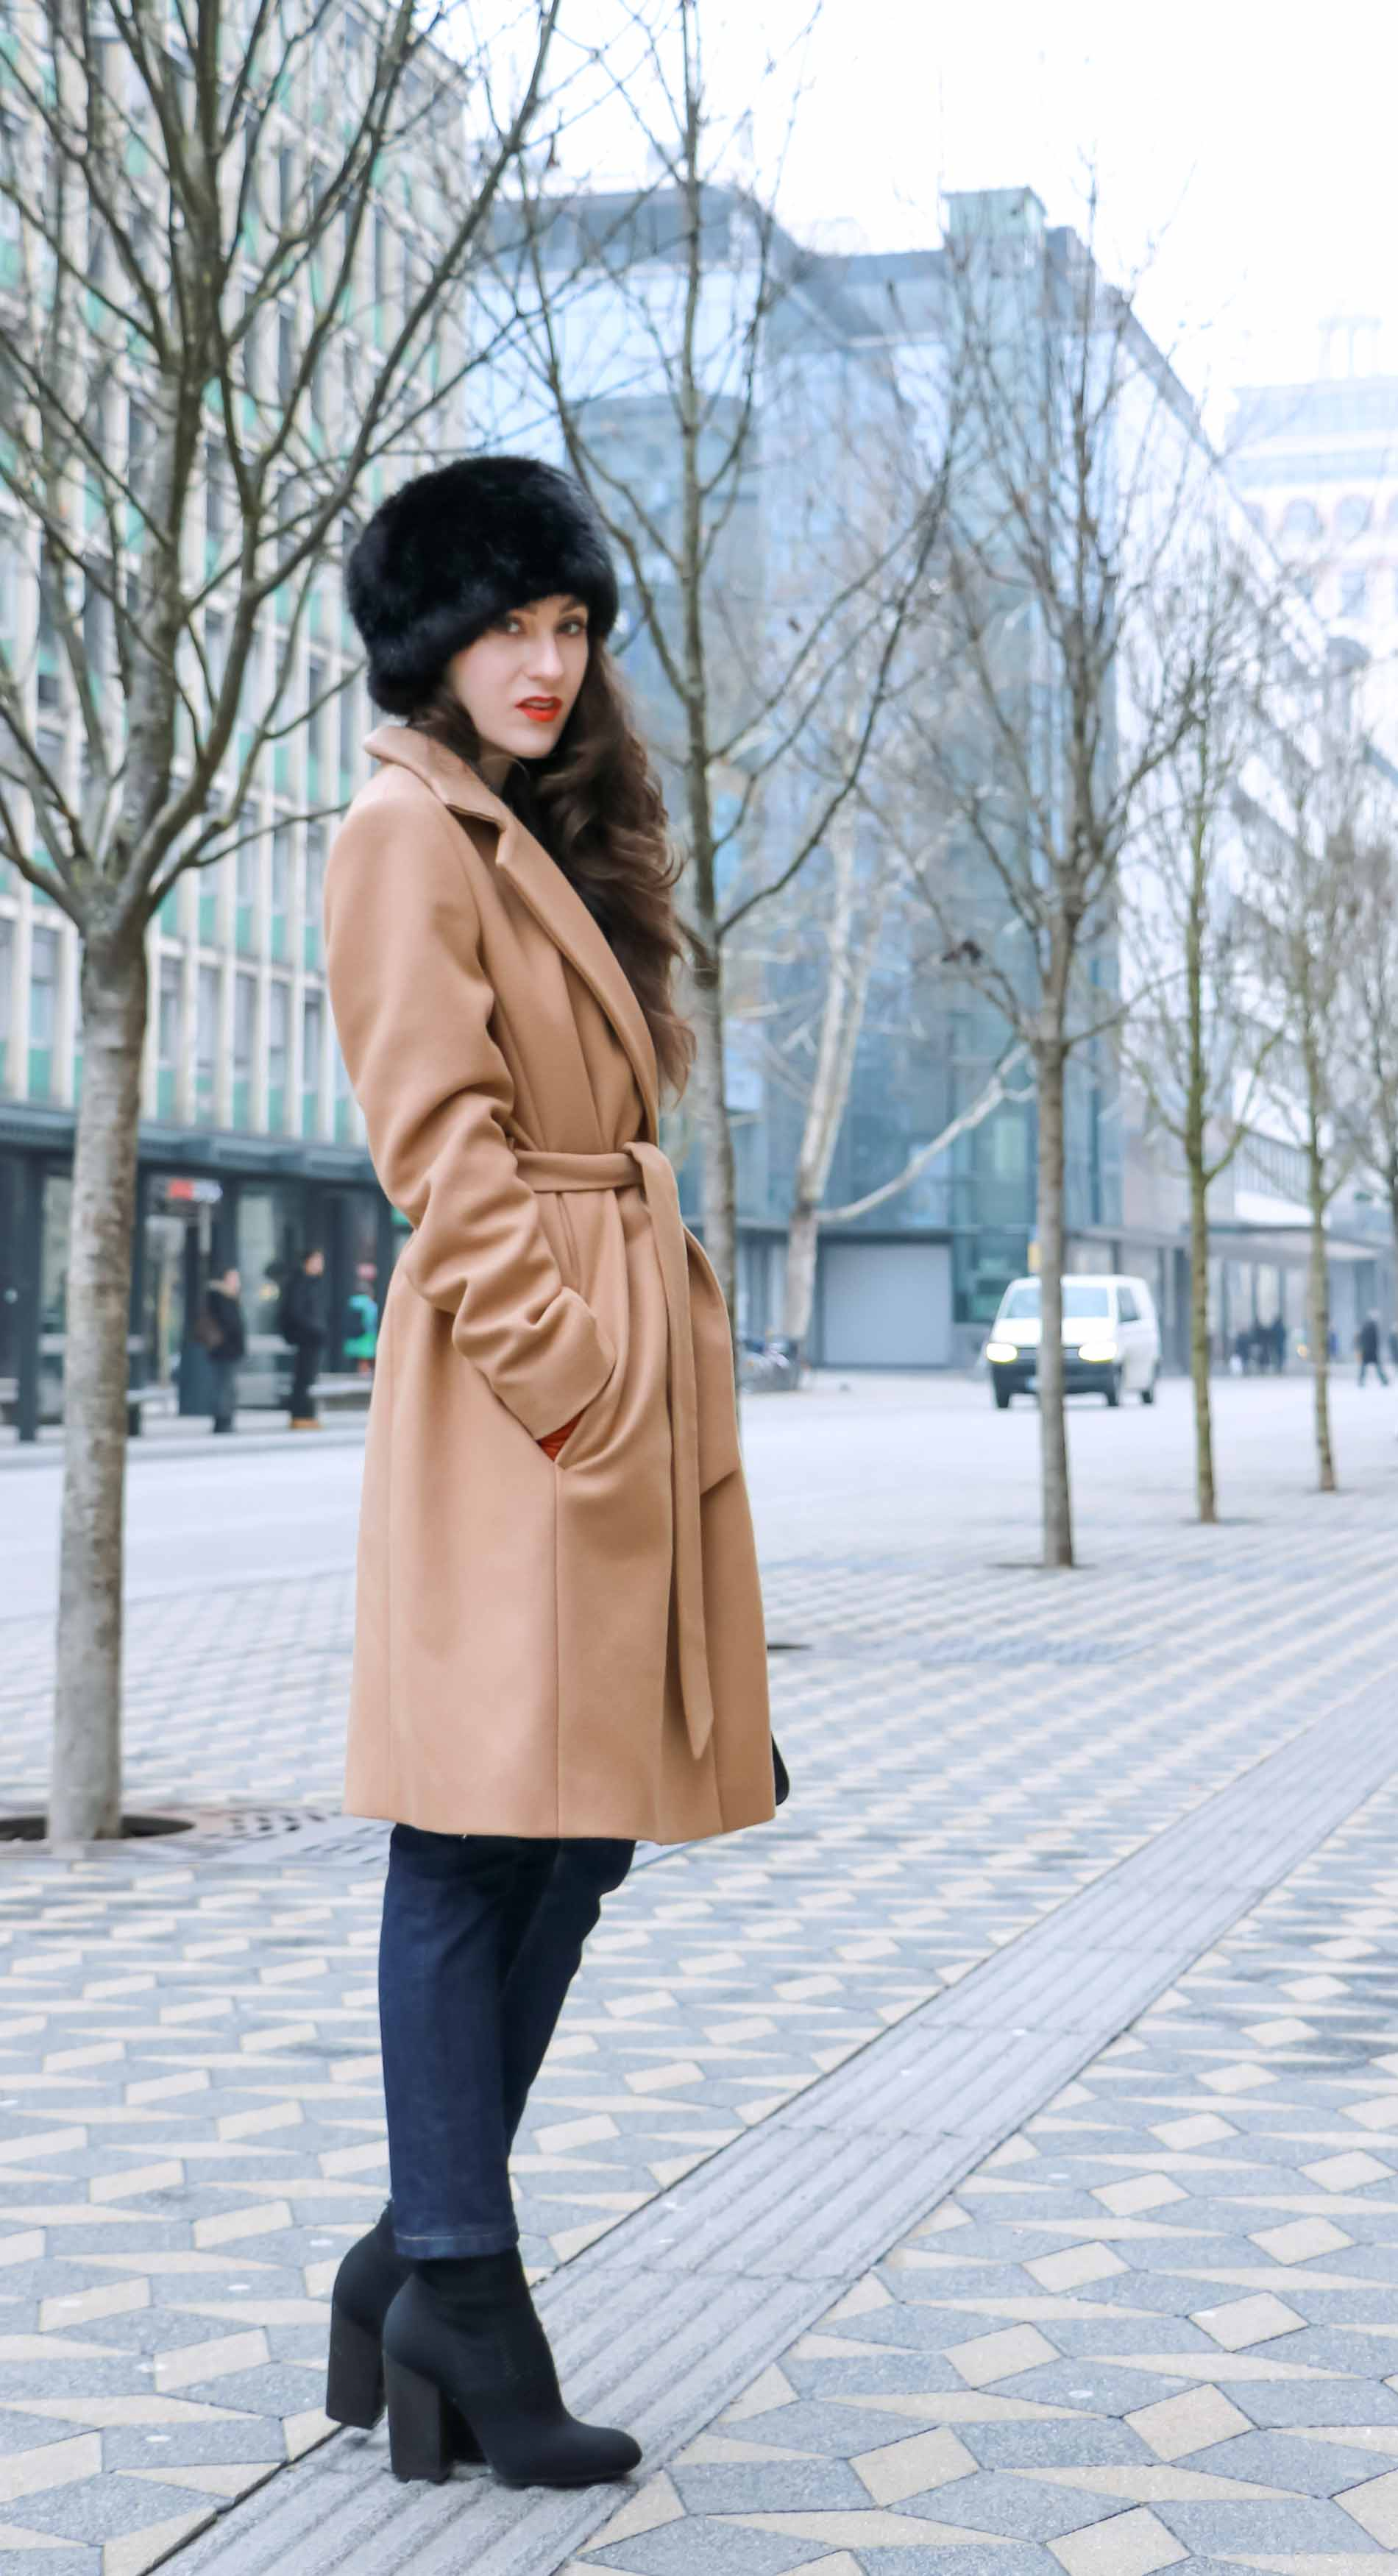 Veronika Lipar of Brunette from Wall Street dressed in wrap Escada camel coat, A.P.C. dark tapered denim jeans, black sock boots from Elena Iachi, black fur hat and small black top handle bag while standing the street